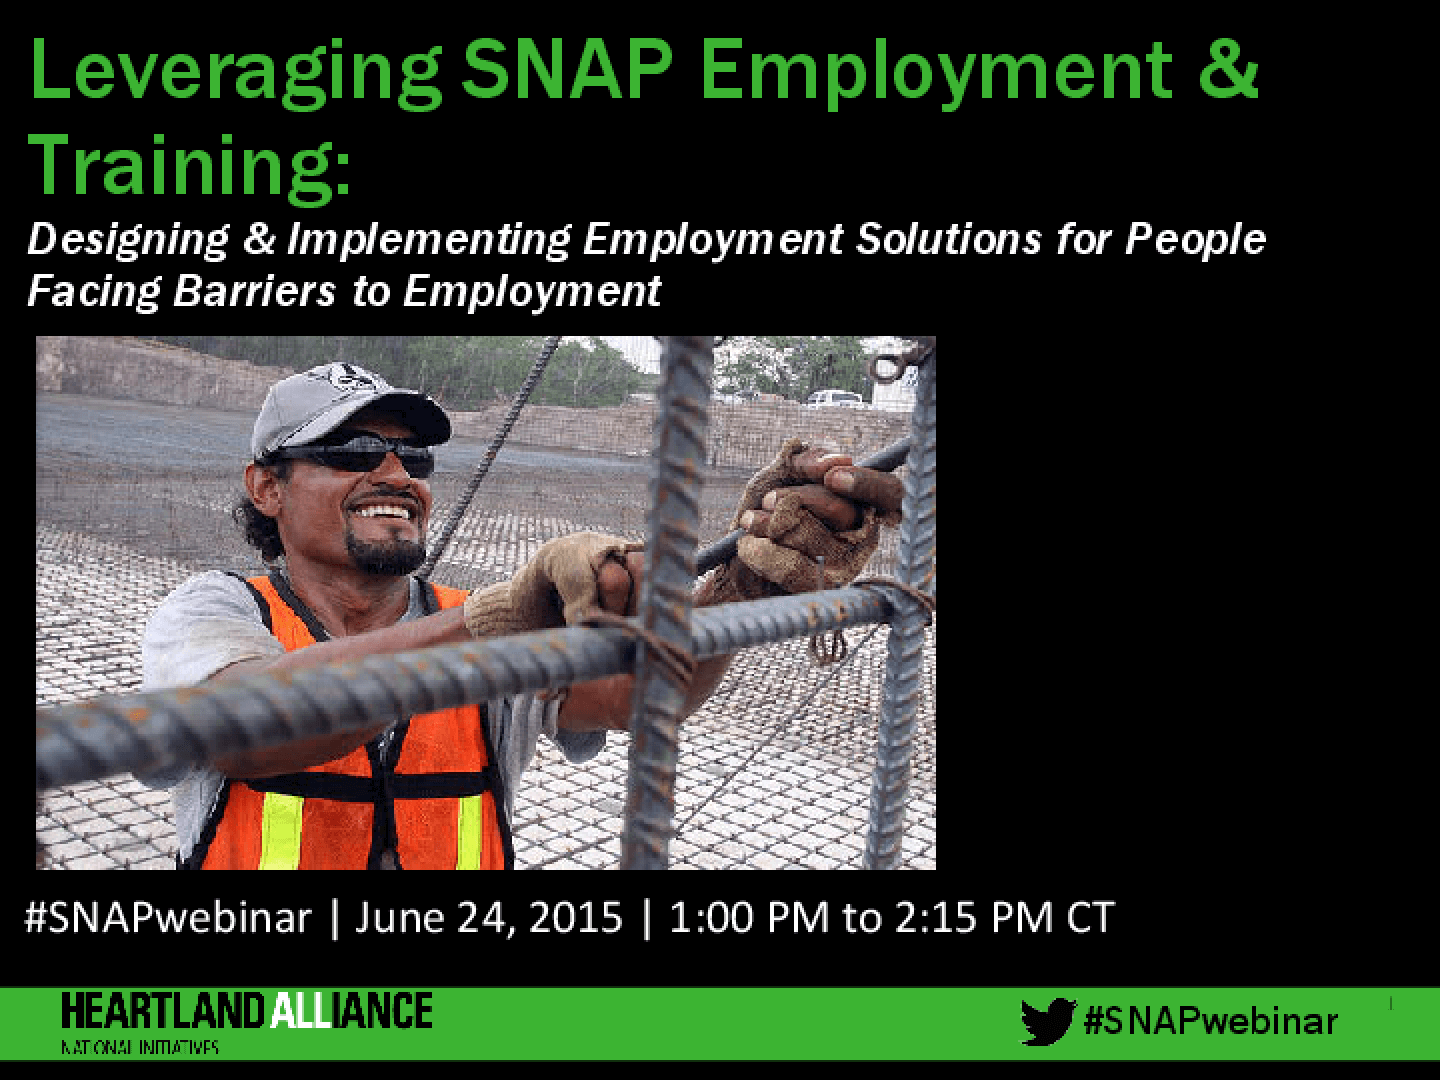 Leveraging SNAP E&T: Designing and Implementing Employment Solutions for People Facing Barriers to Employment